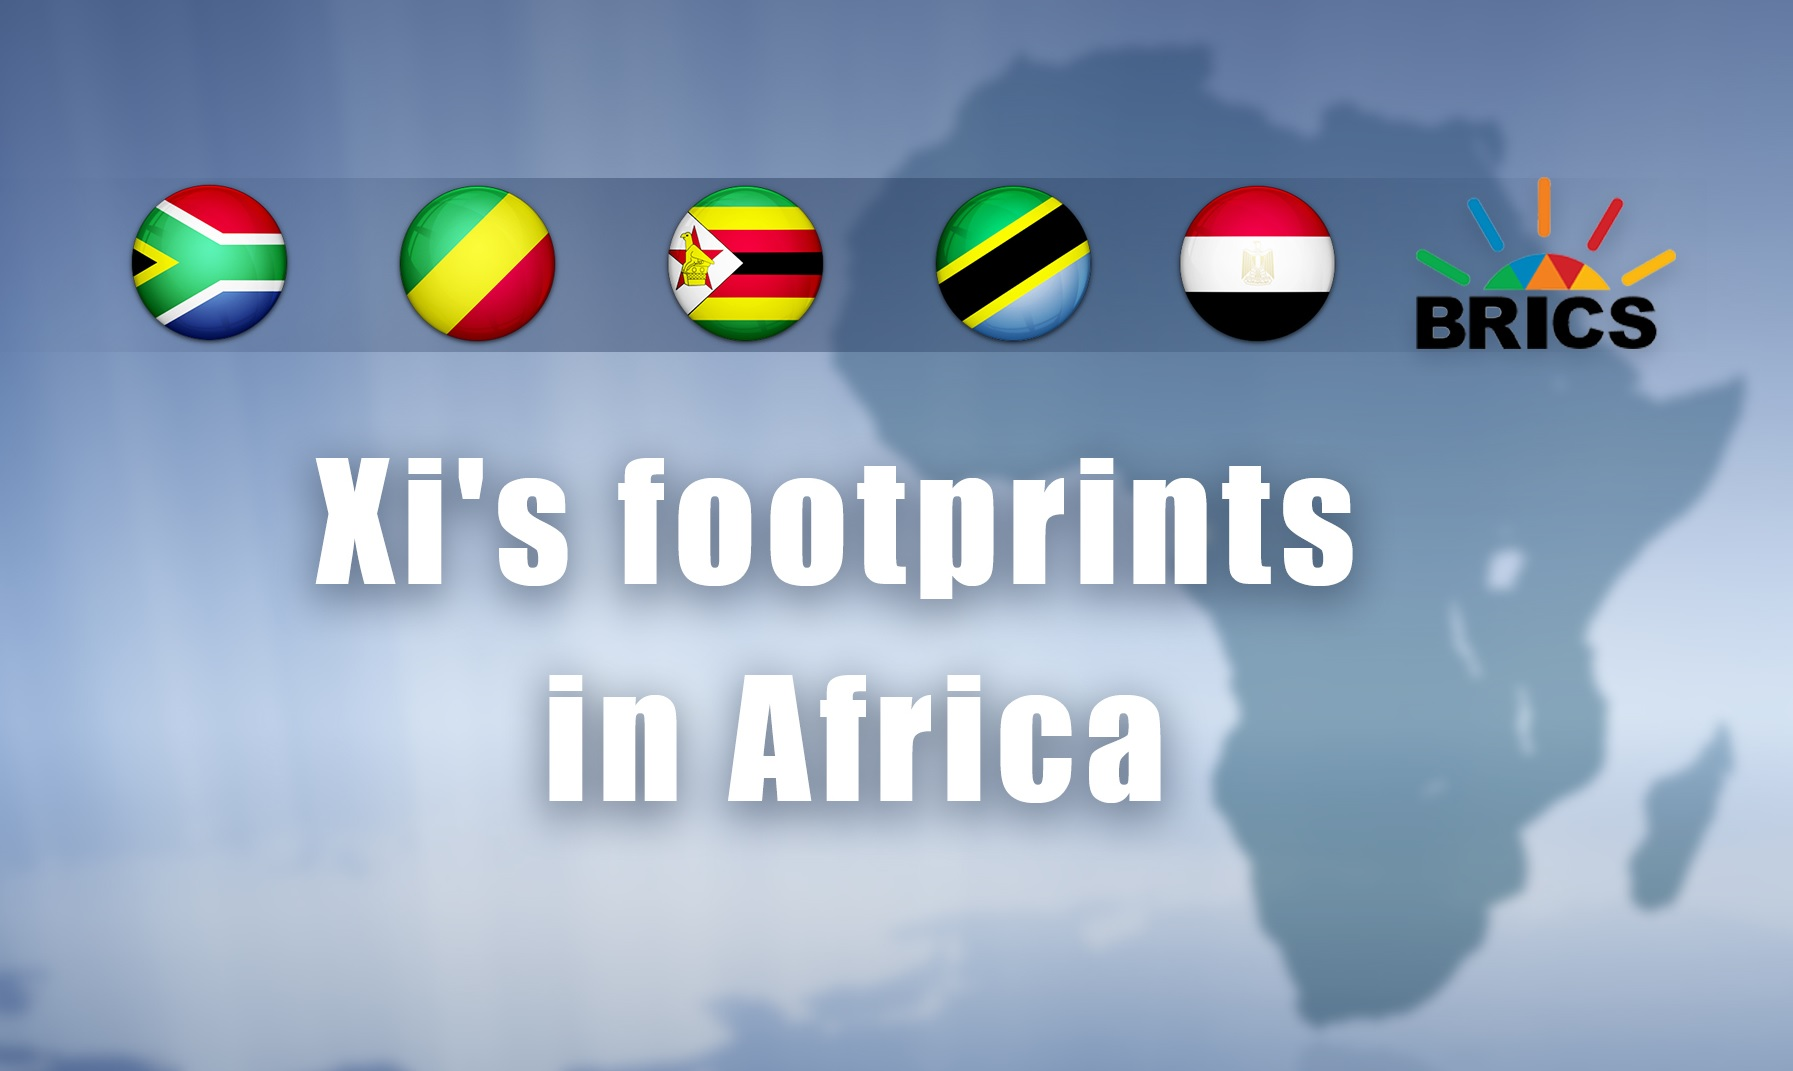 Chinese President Xi's footprints in Africa